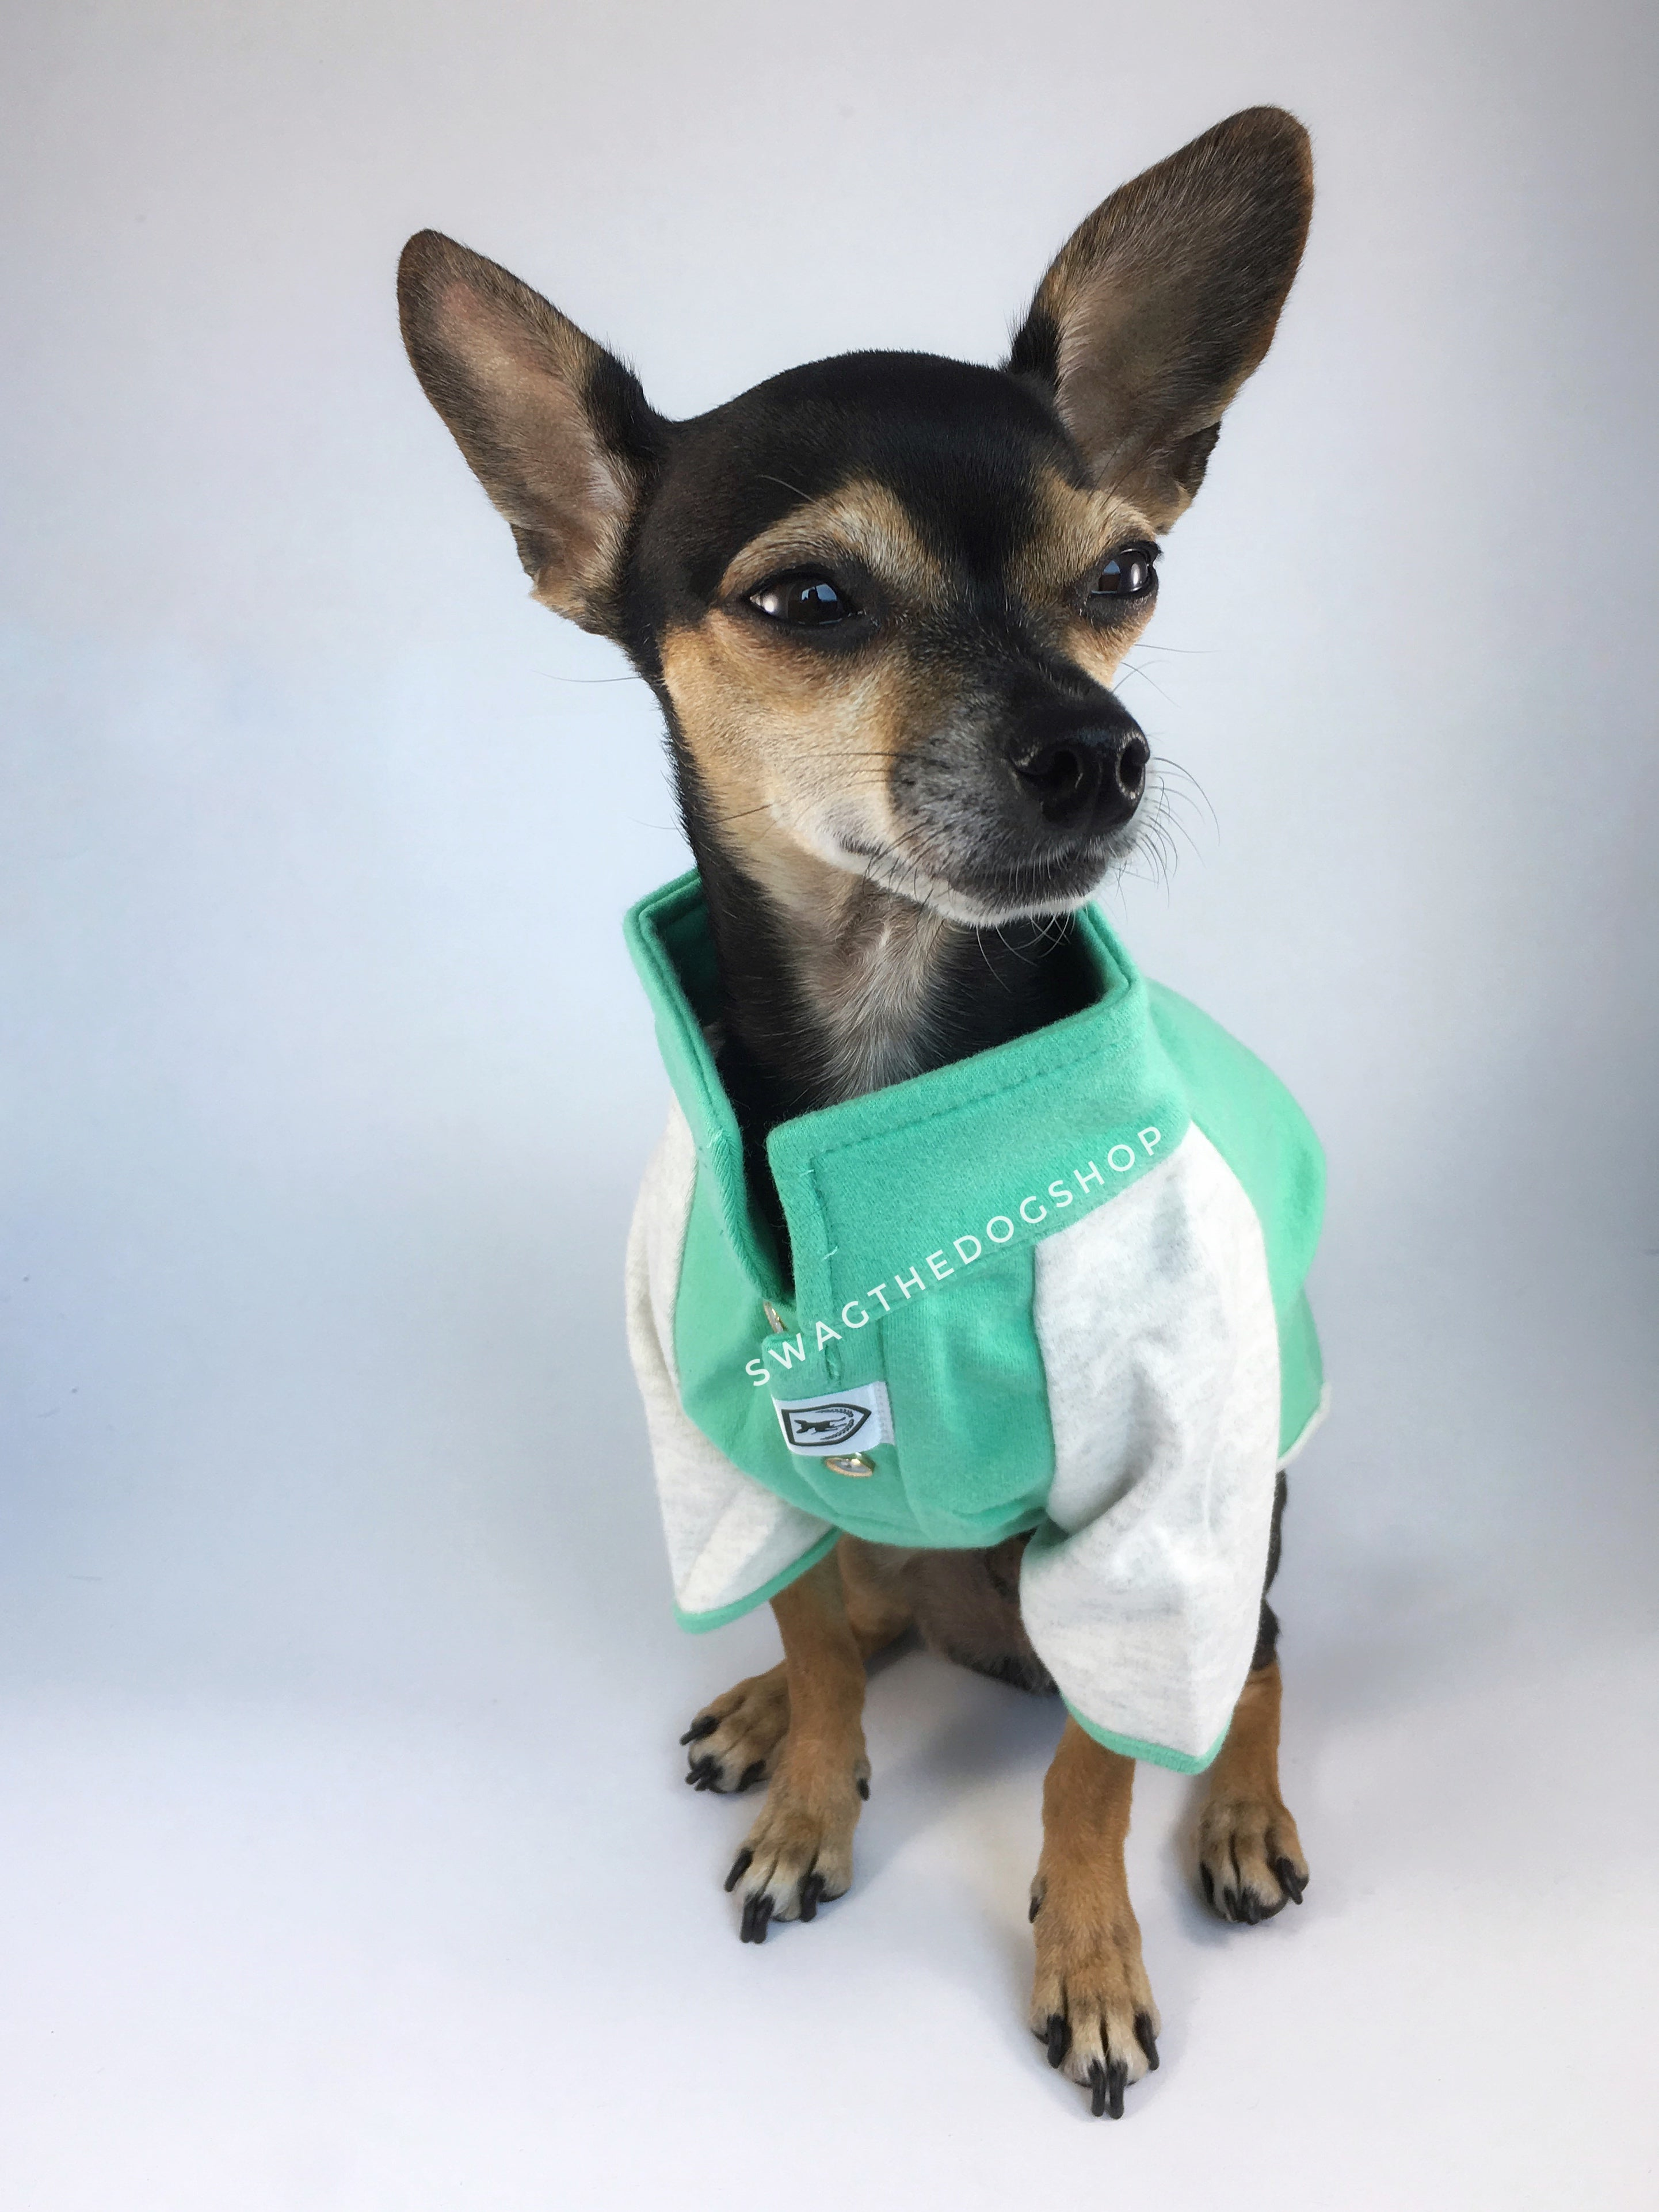 Surfside Emerald Green Polo Shirt - Full Front View of Cute Chihuahua Dog Wearing Shirt. Emerald Green with Light Gray Sleeves Polo Shirt